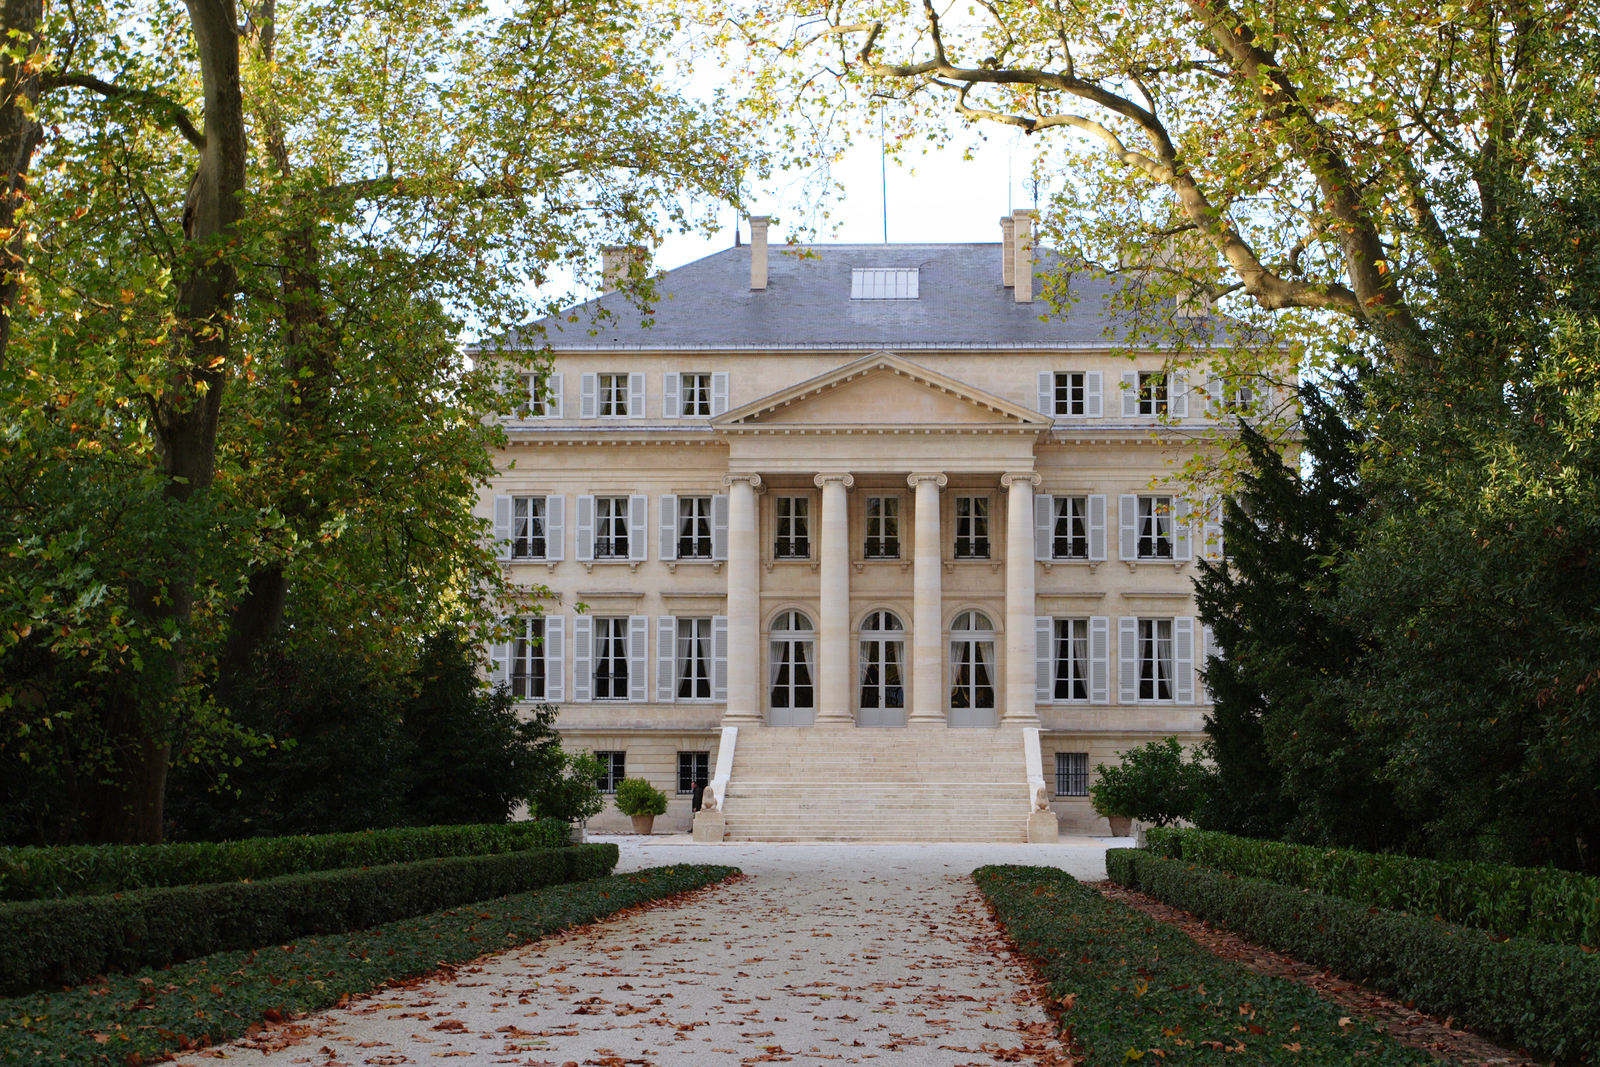 The legendary First-Growth estate of Chateau Margaux makes easily the most famous wine from Margaux.